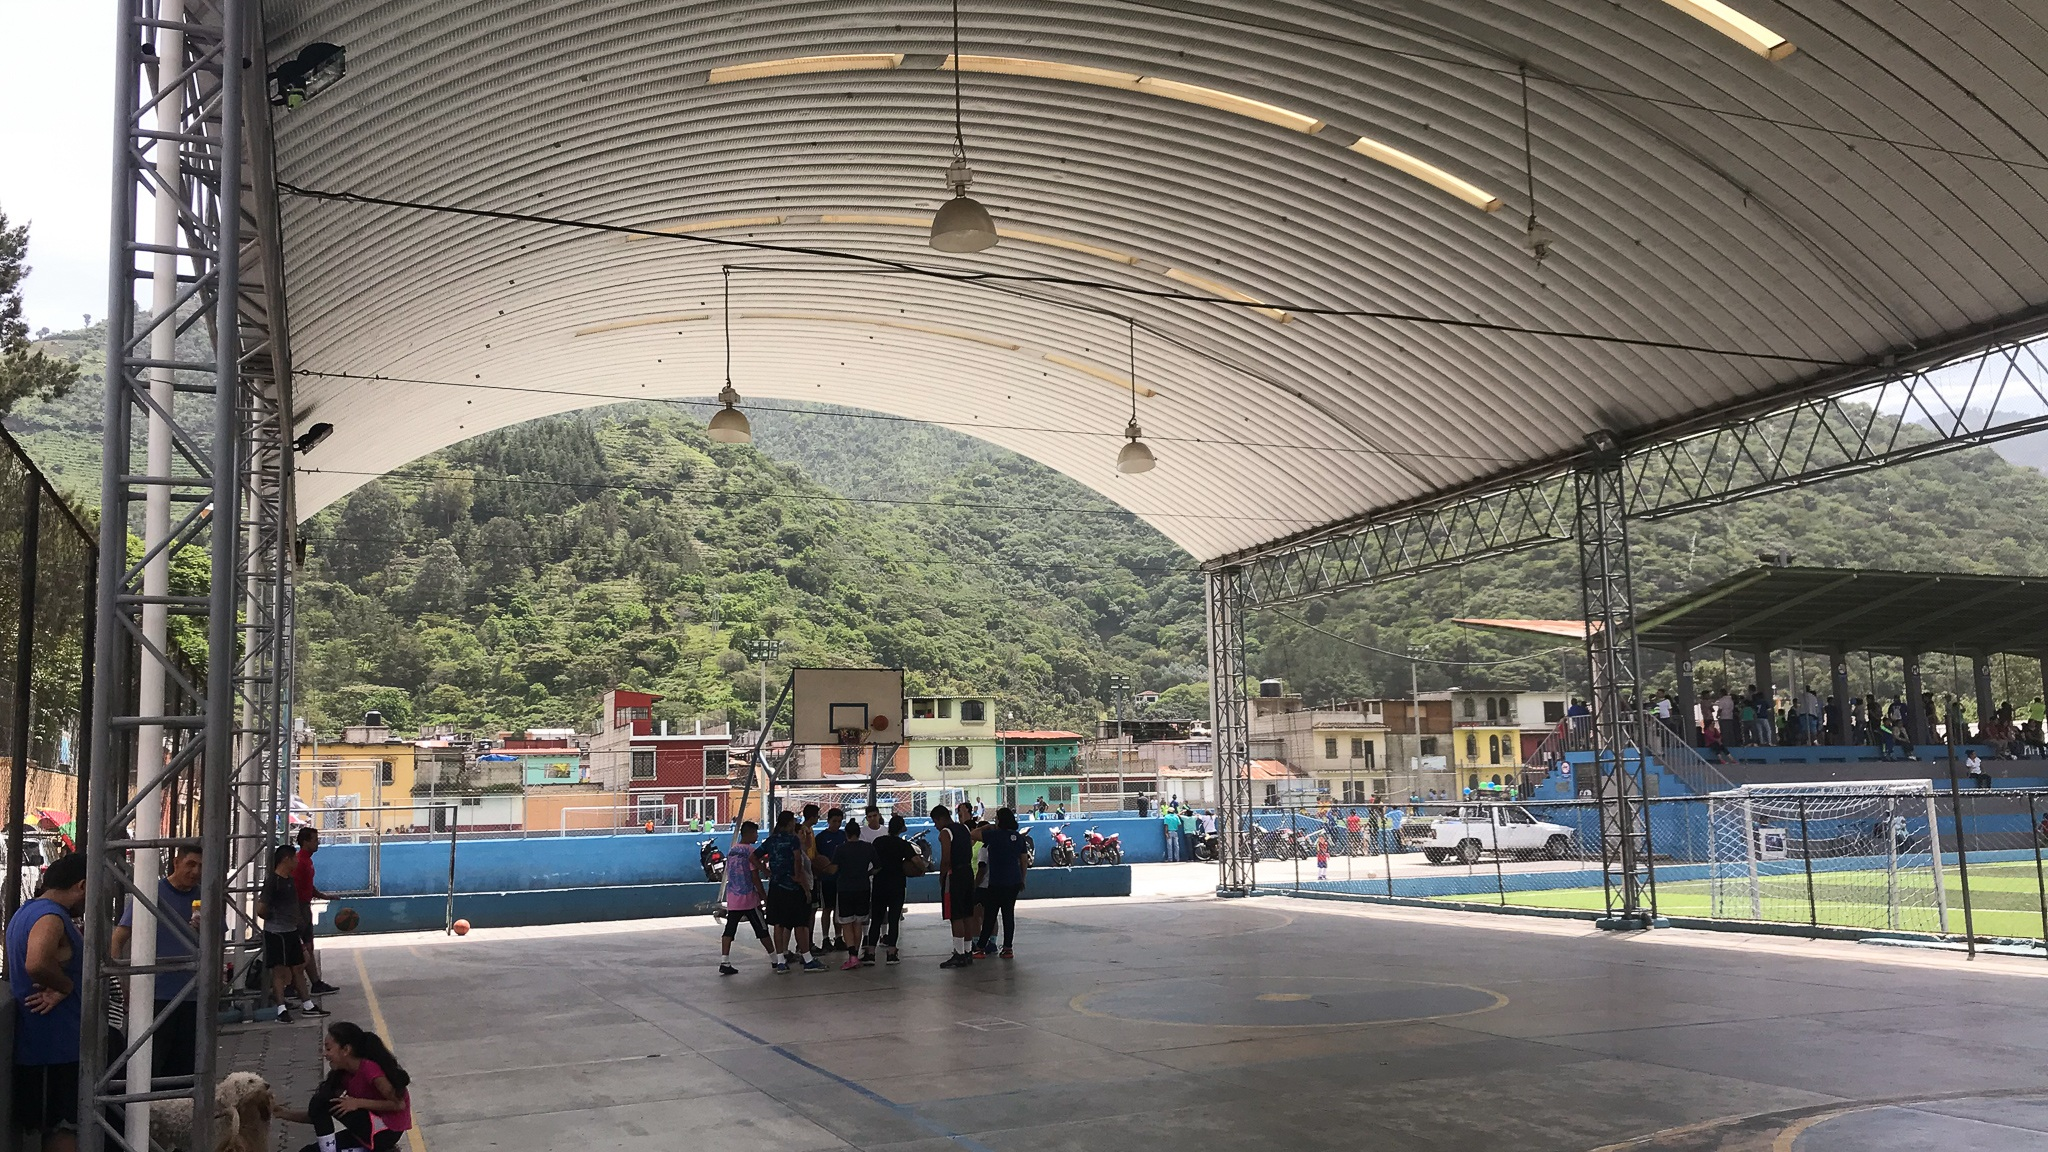 Interesting basketball court in Antigua Guatemala